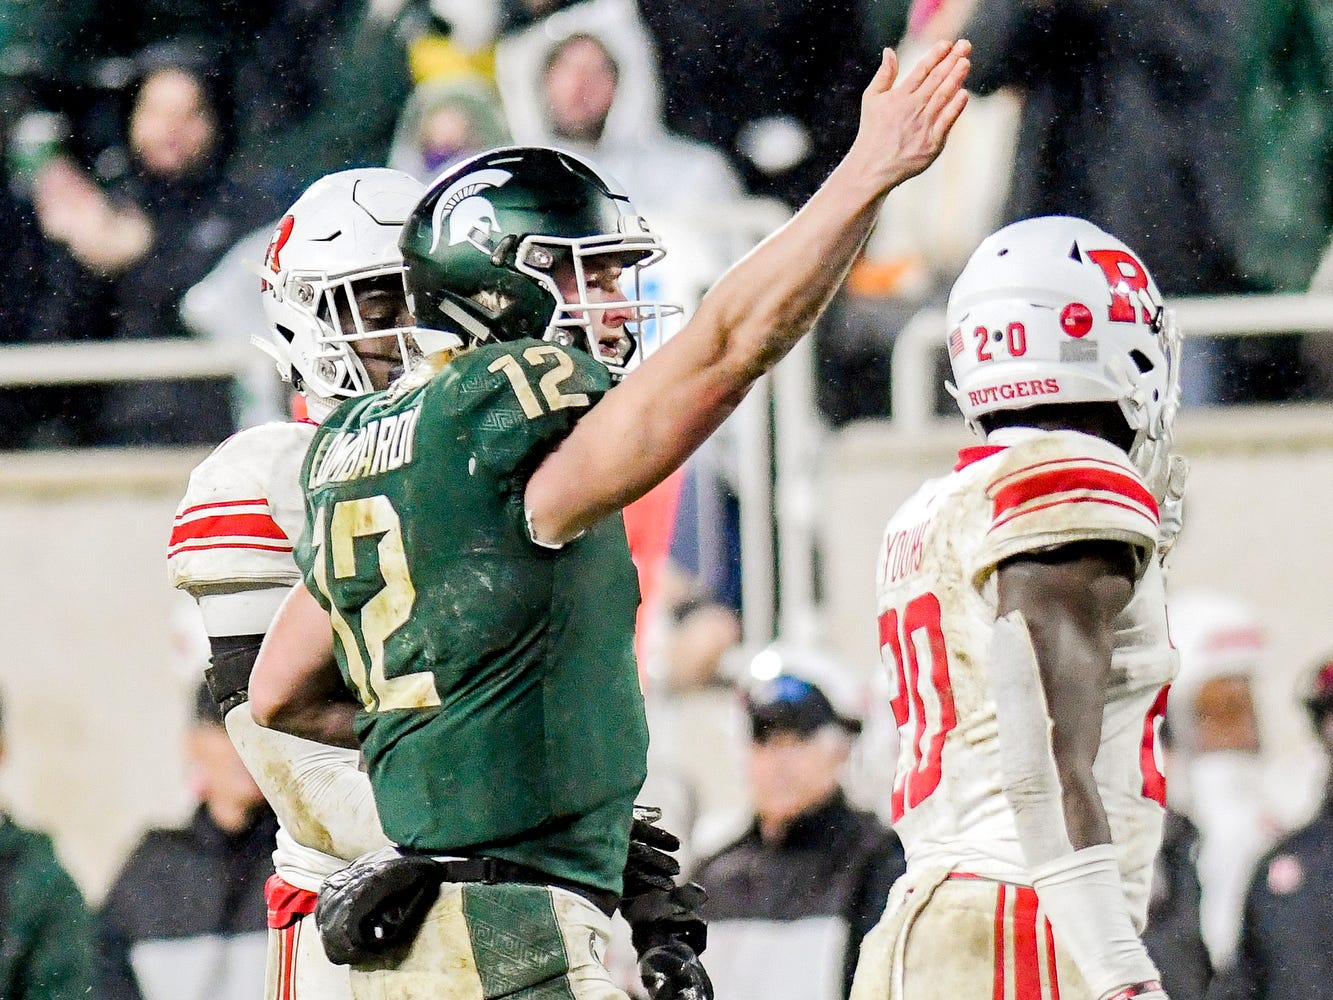 Michigan State quarterback Rocky Lombardi signals for a first down after a run during the fourth quarter on Saturday, Nov. 24, 2018, at Spartan Stadium in East Lansing.